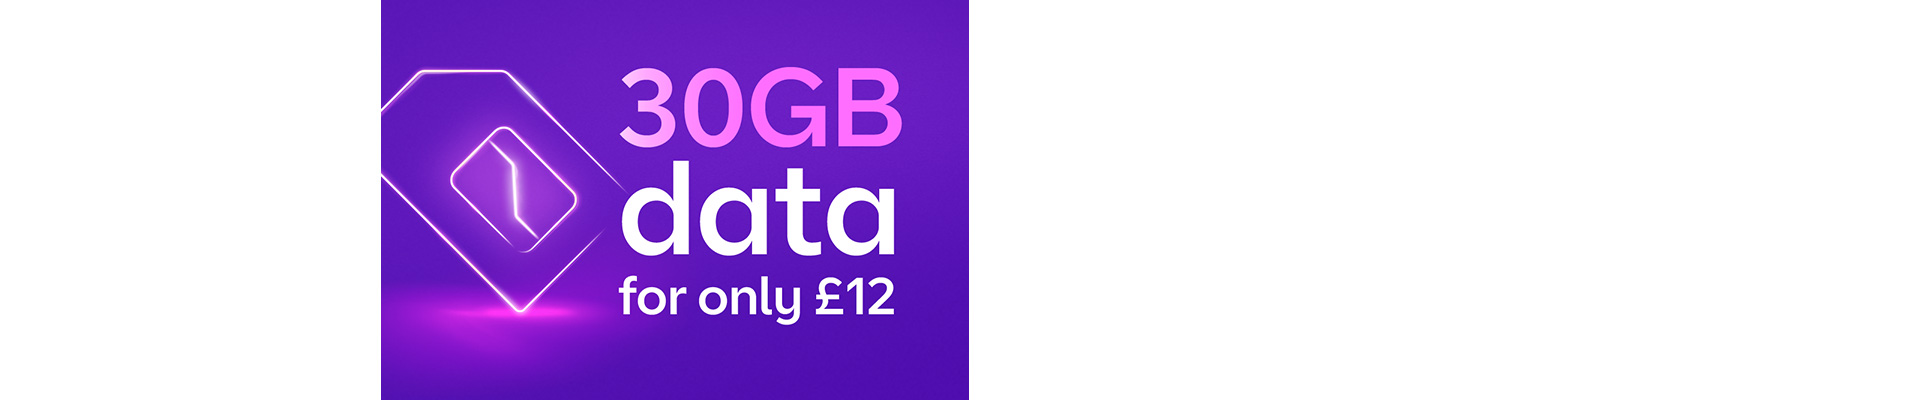 30GB for £12 for BT Broadband customers